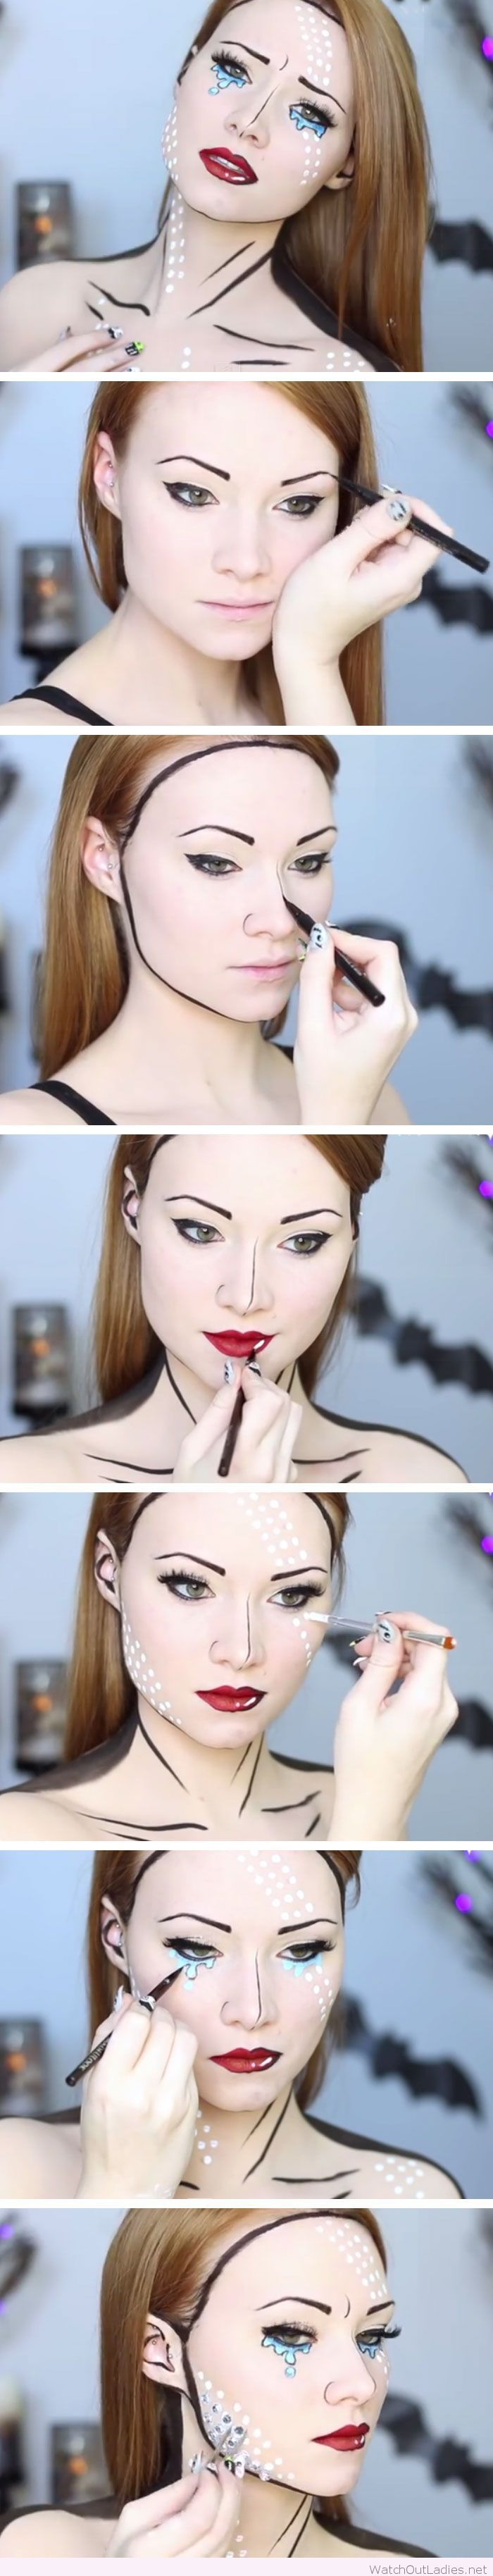 Comic book makeup tutorial for Halloween